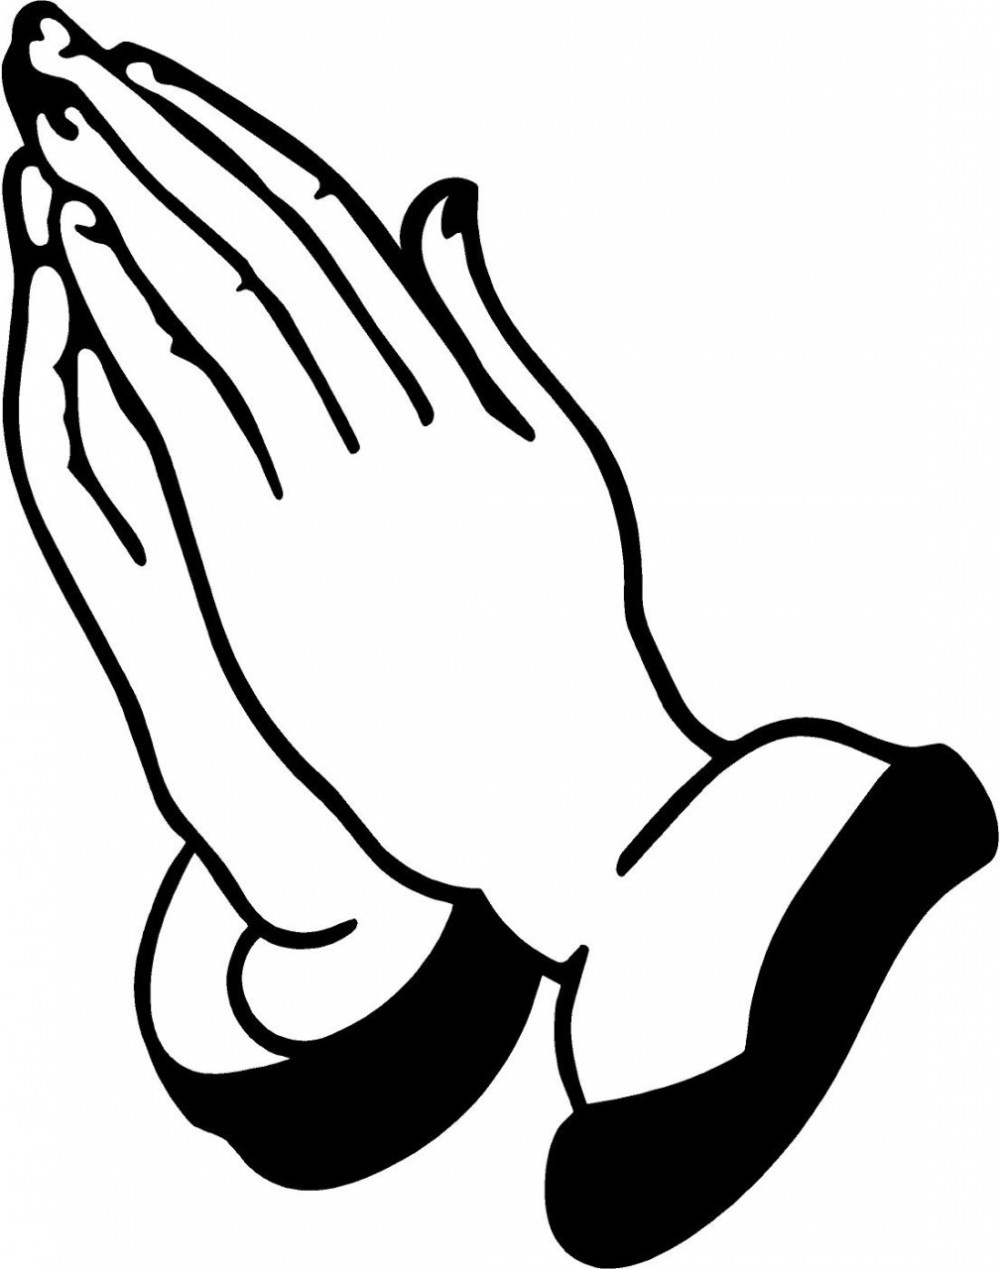 medium resolution of praying hands prayer hands clipart free clipart images